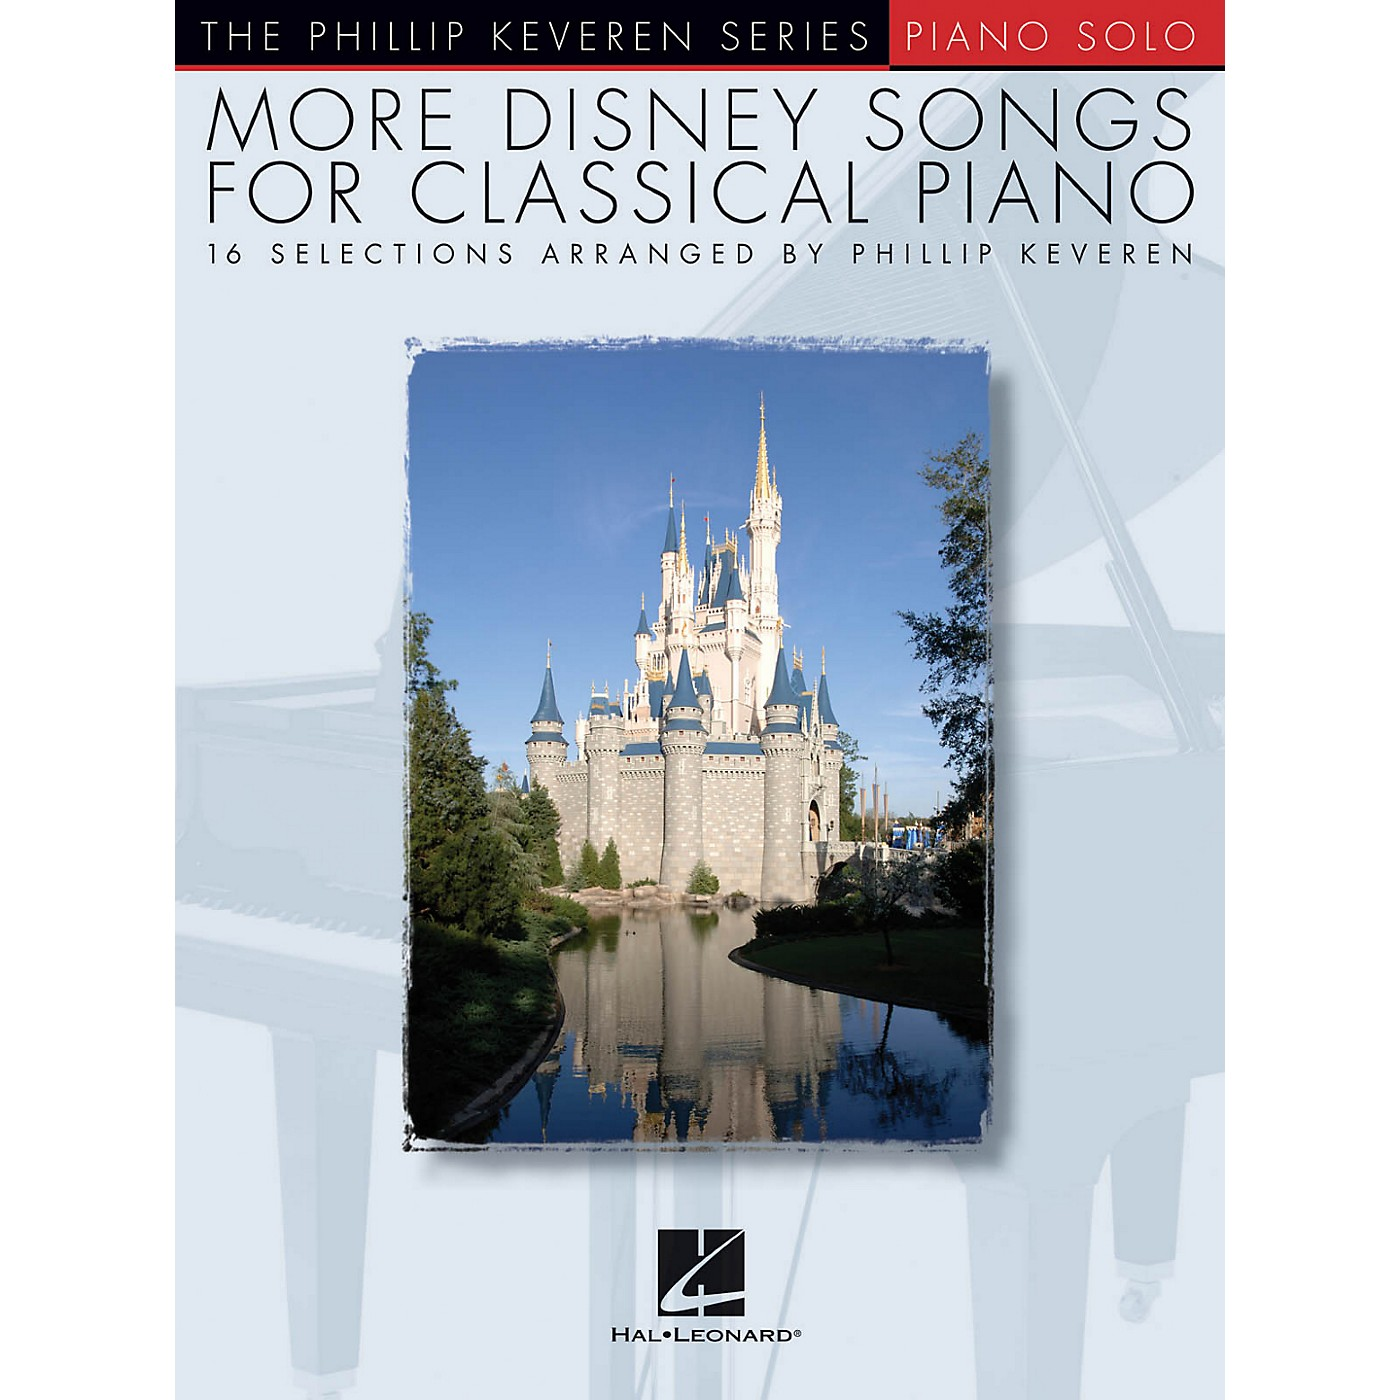 Hal Leonard More Disney Songs For Classical Piano - The Phillip Keveren Series For Piano Solo thumbnail